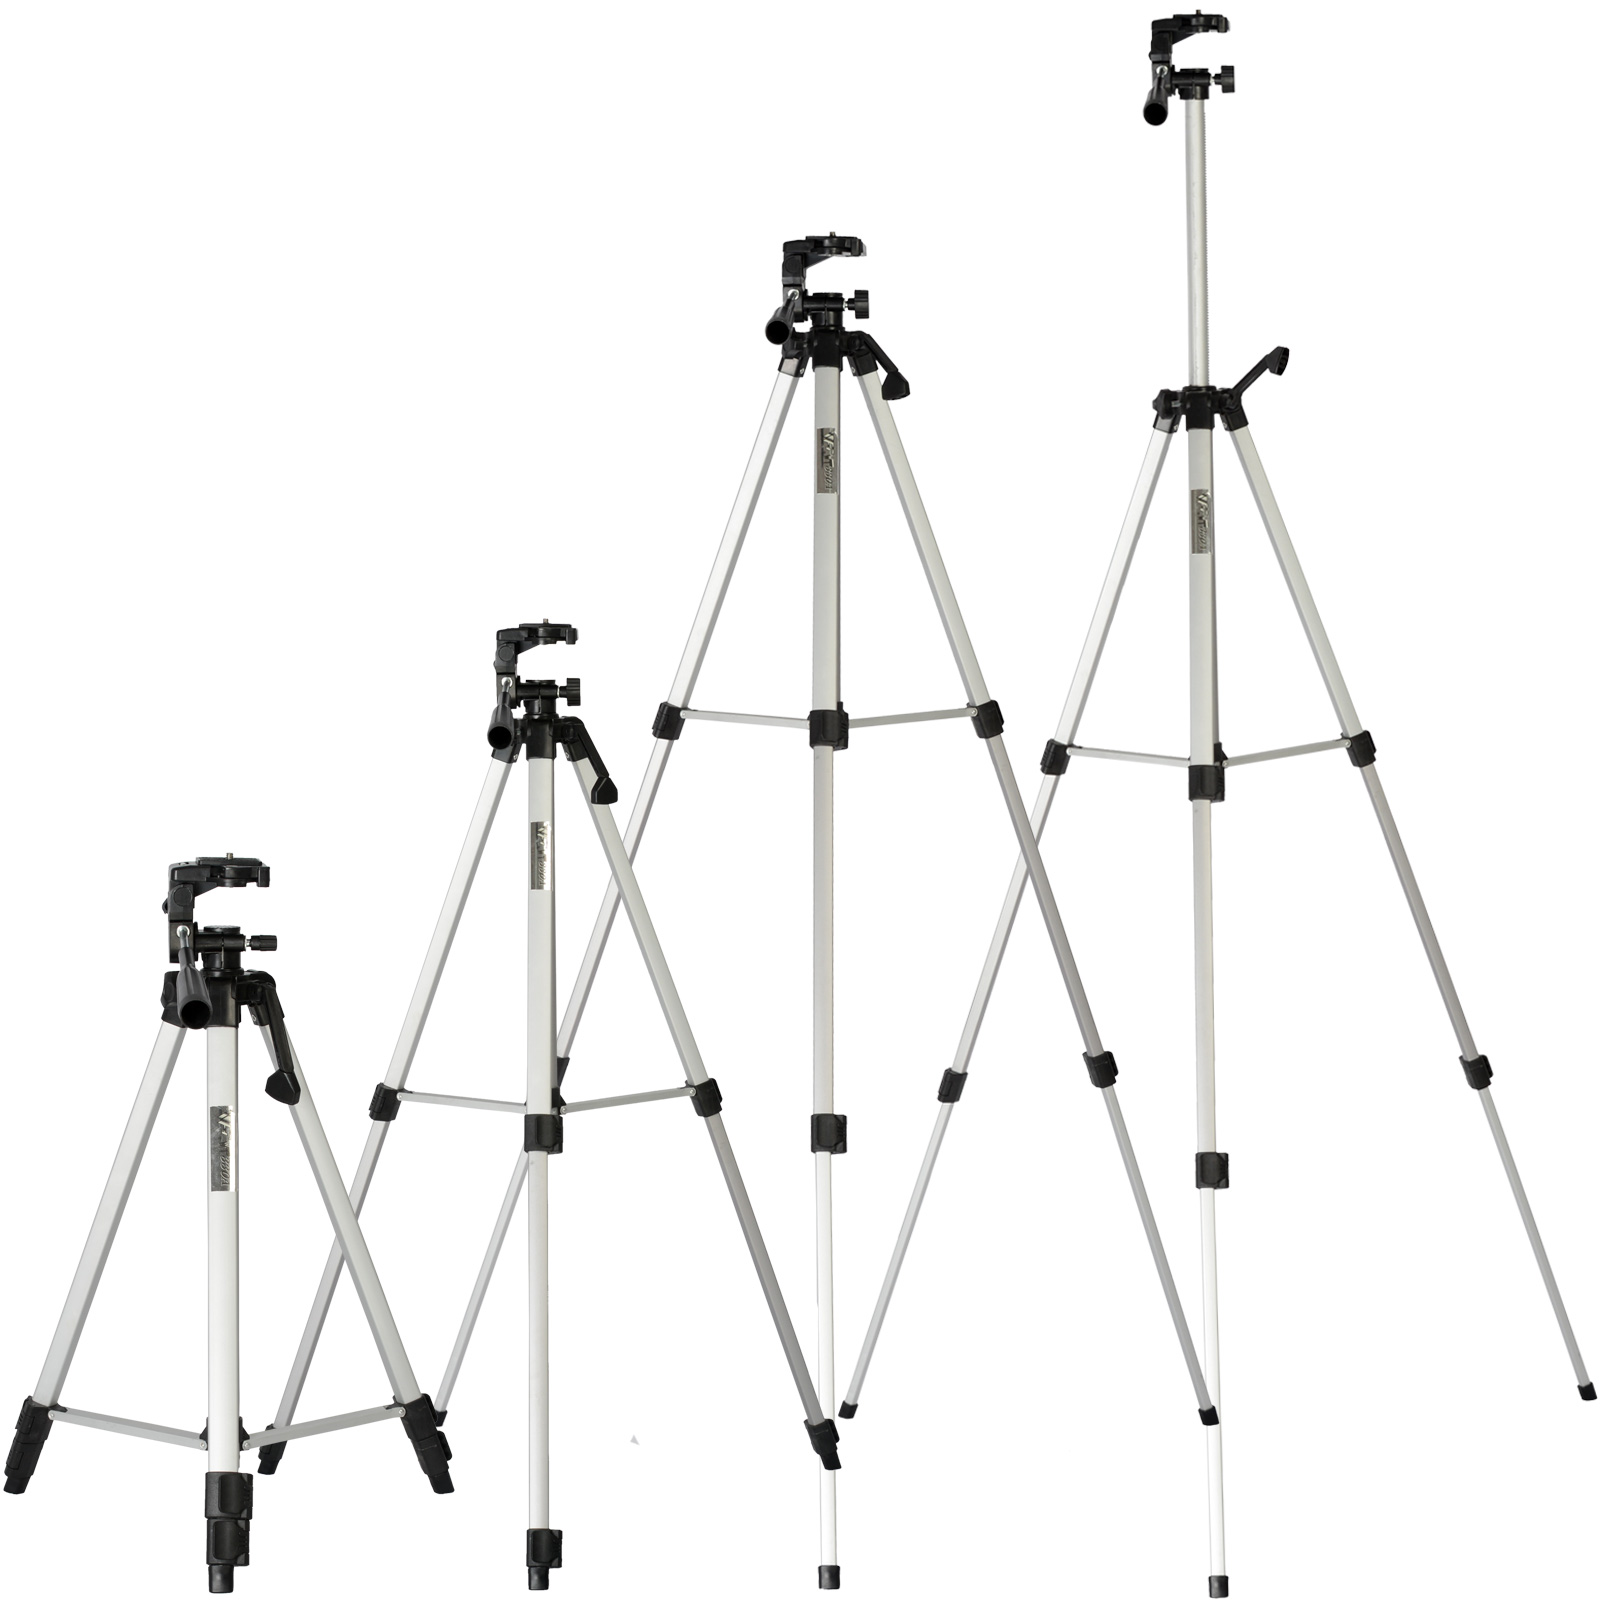 1 3m Professional Dslr Camera Camcorder Tripod Stand For